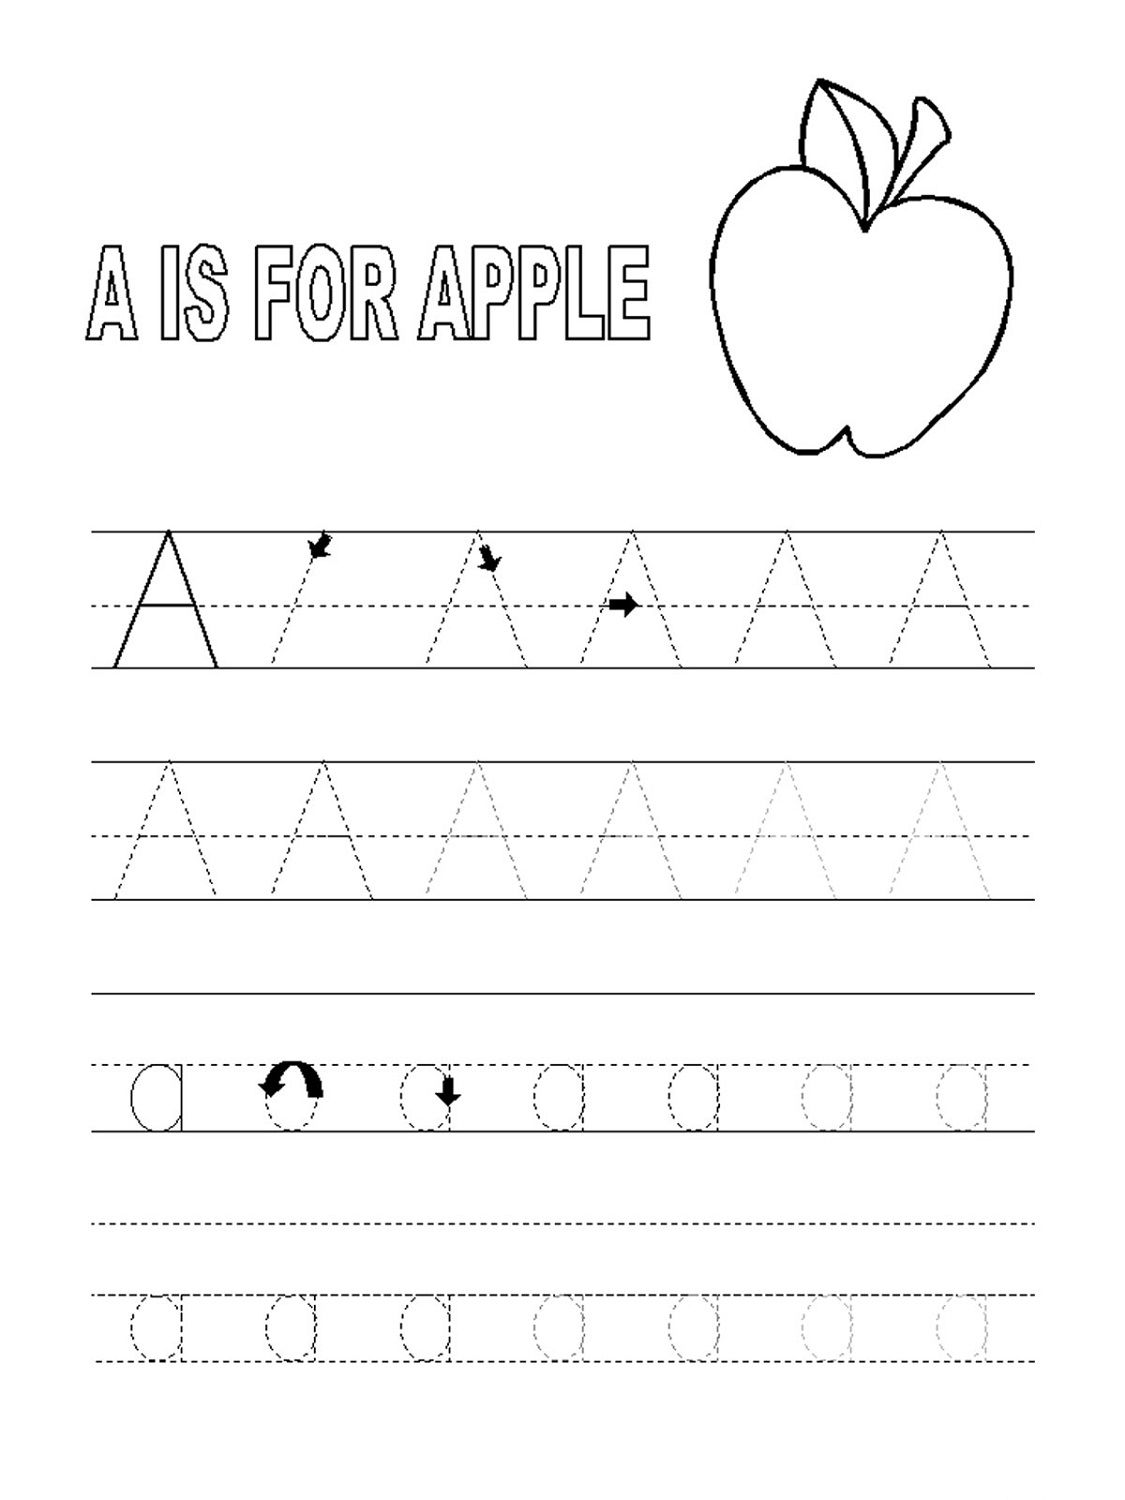 This is a picture of Zany Printable Traceable Letter